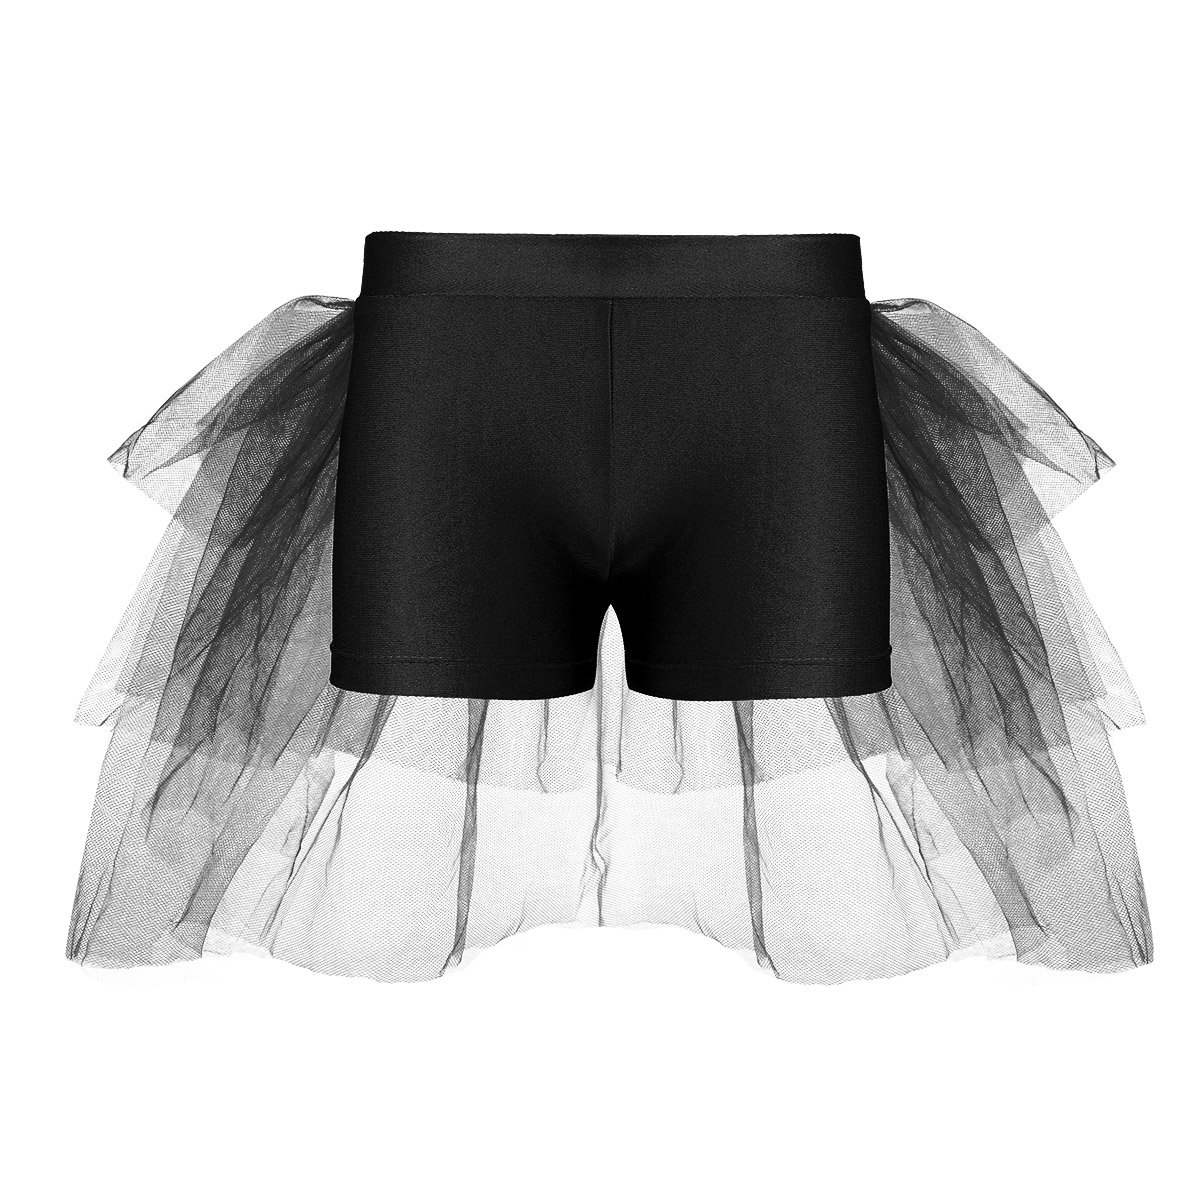 Agoky Kids Girls Shorts Bottoms with Attached Bustle Tiered Mesh for Ballet Dance Stage Performance Black 3-4